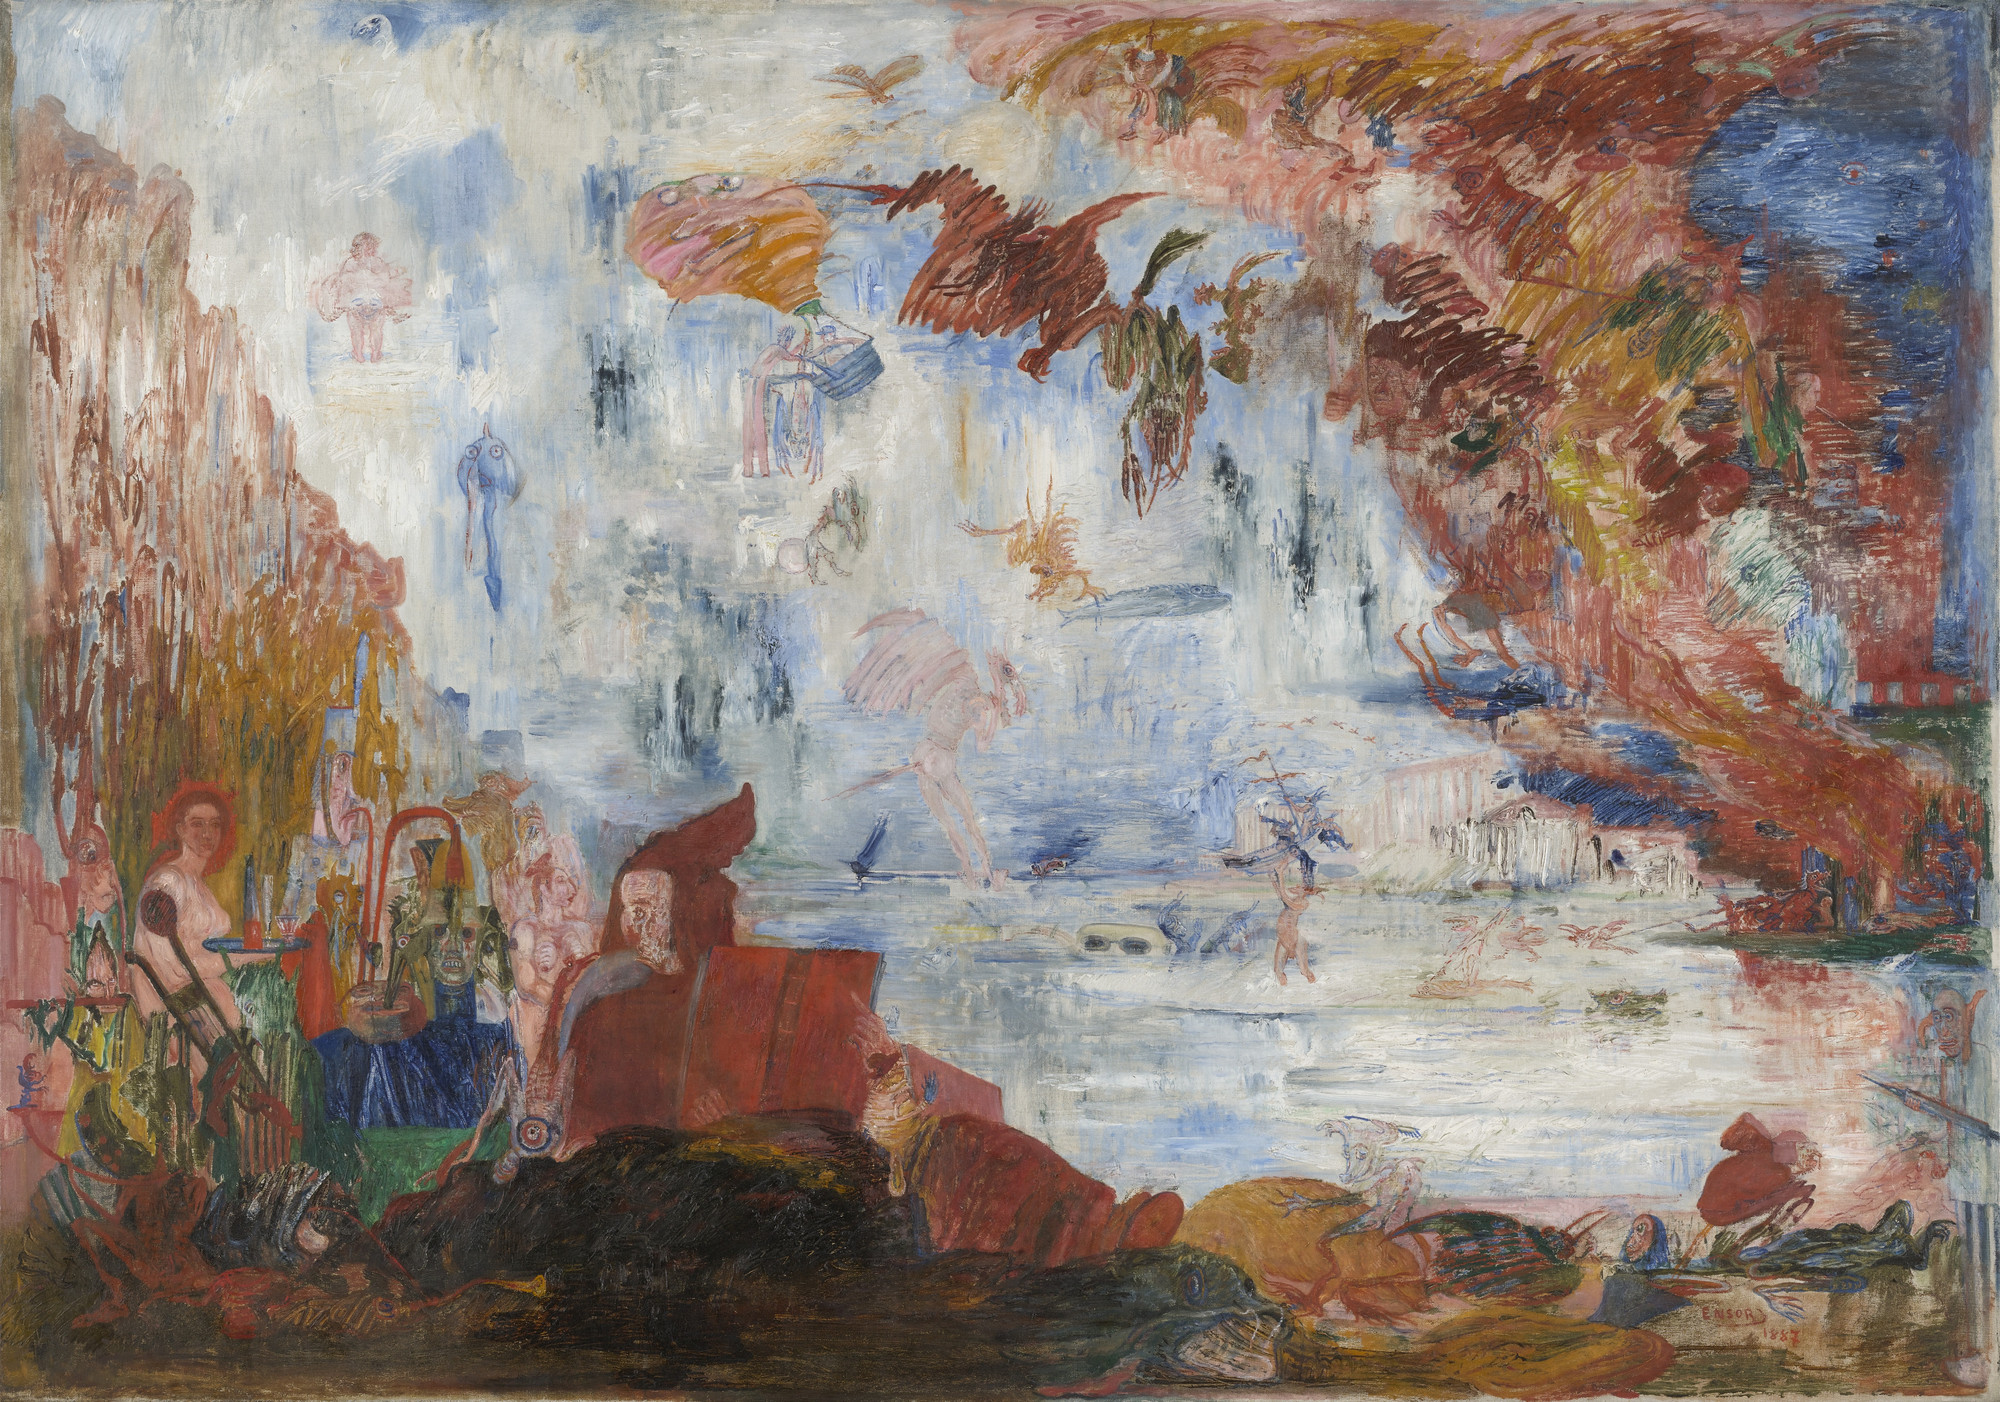 James Ensor. Tribulations of Saint Anthony. 1887